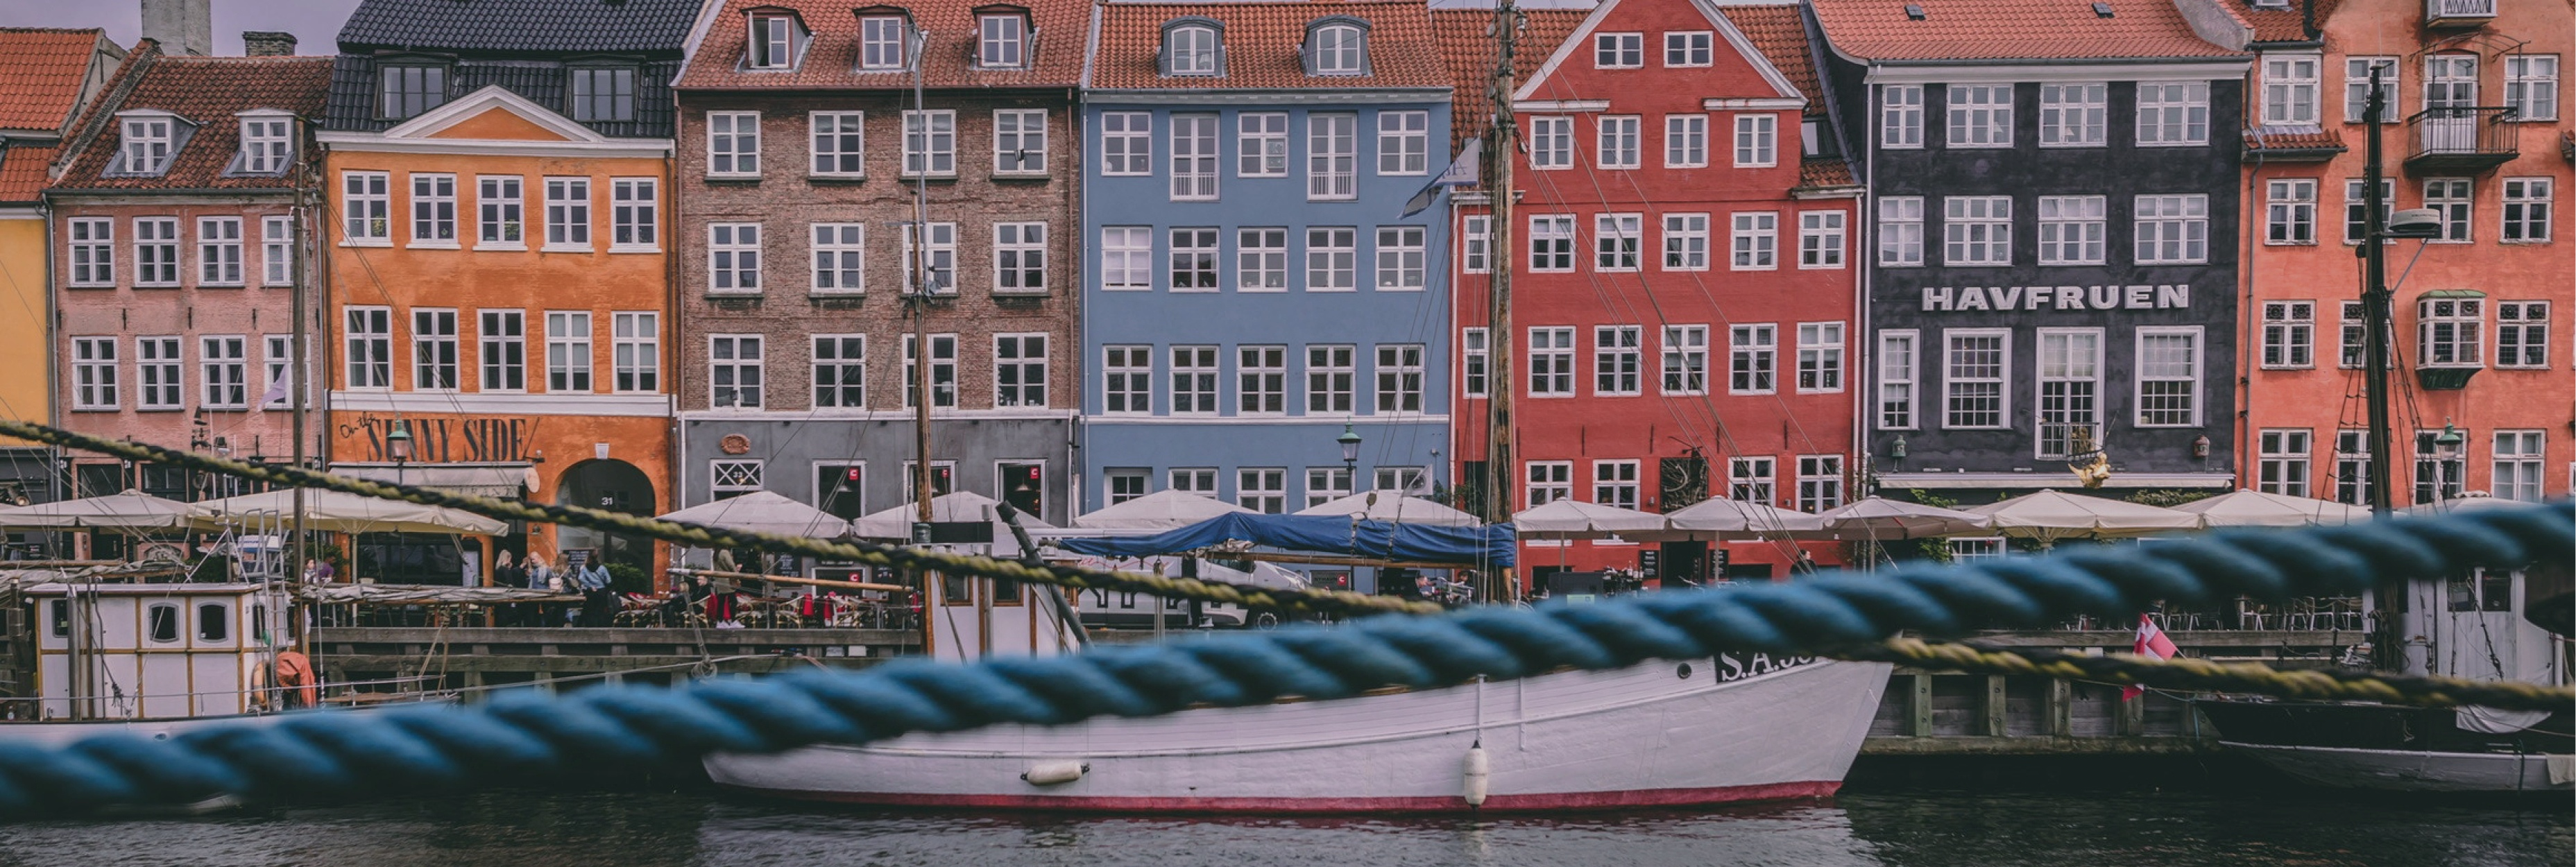 Top 3 Reasons why Denmark became a champion in food waste reduction